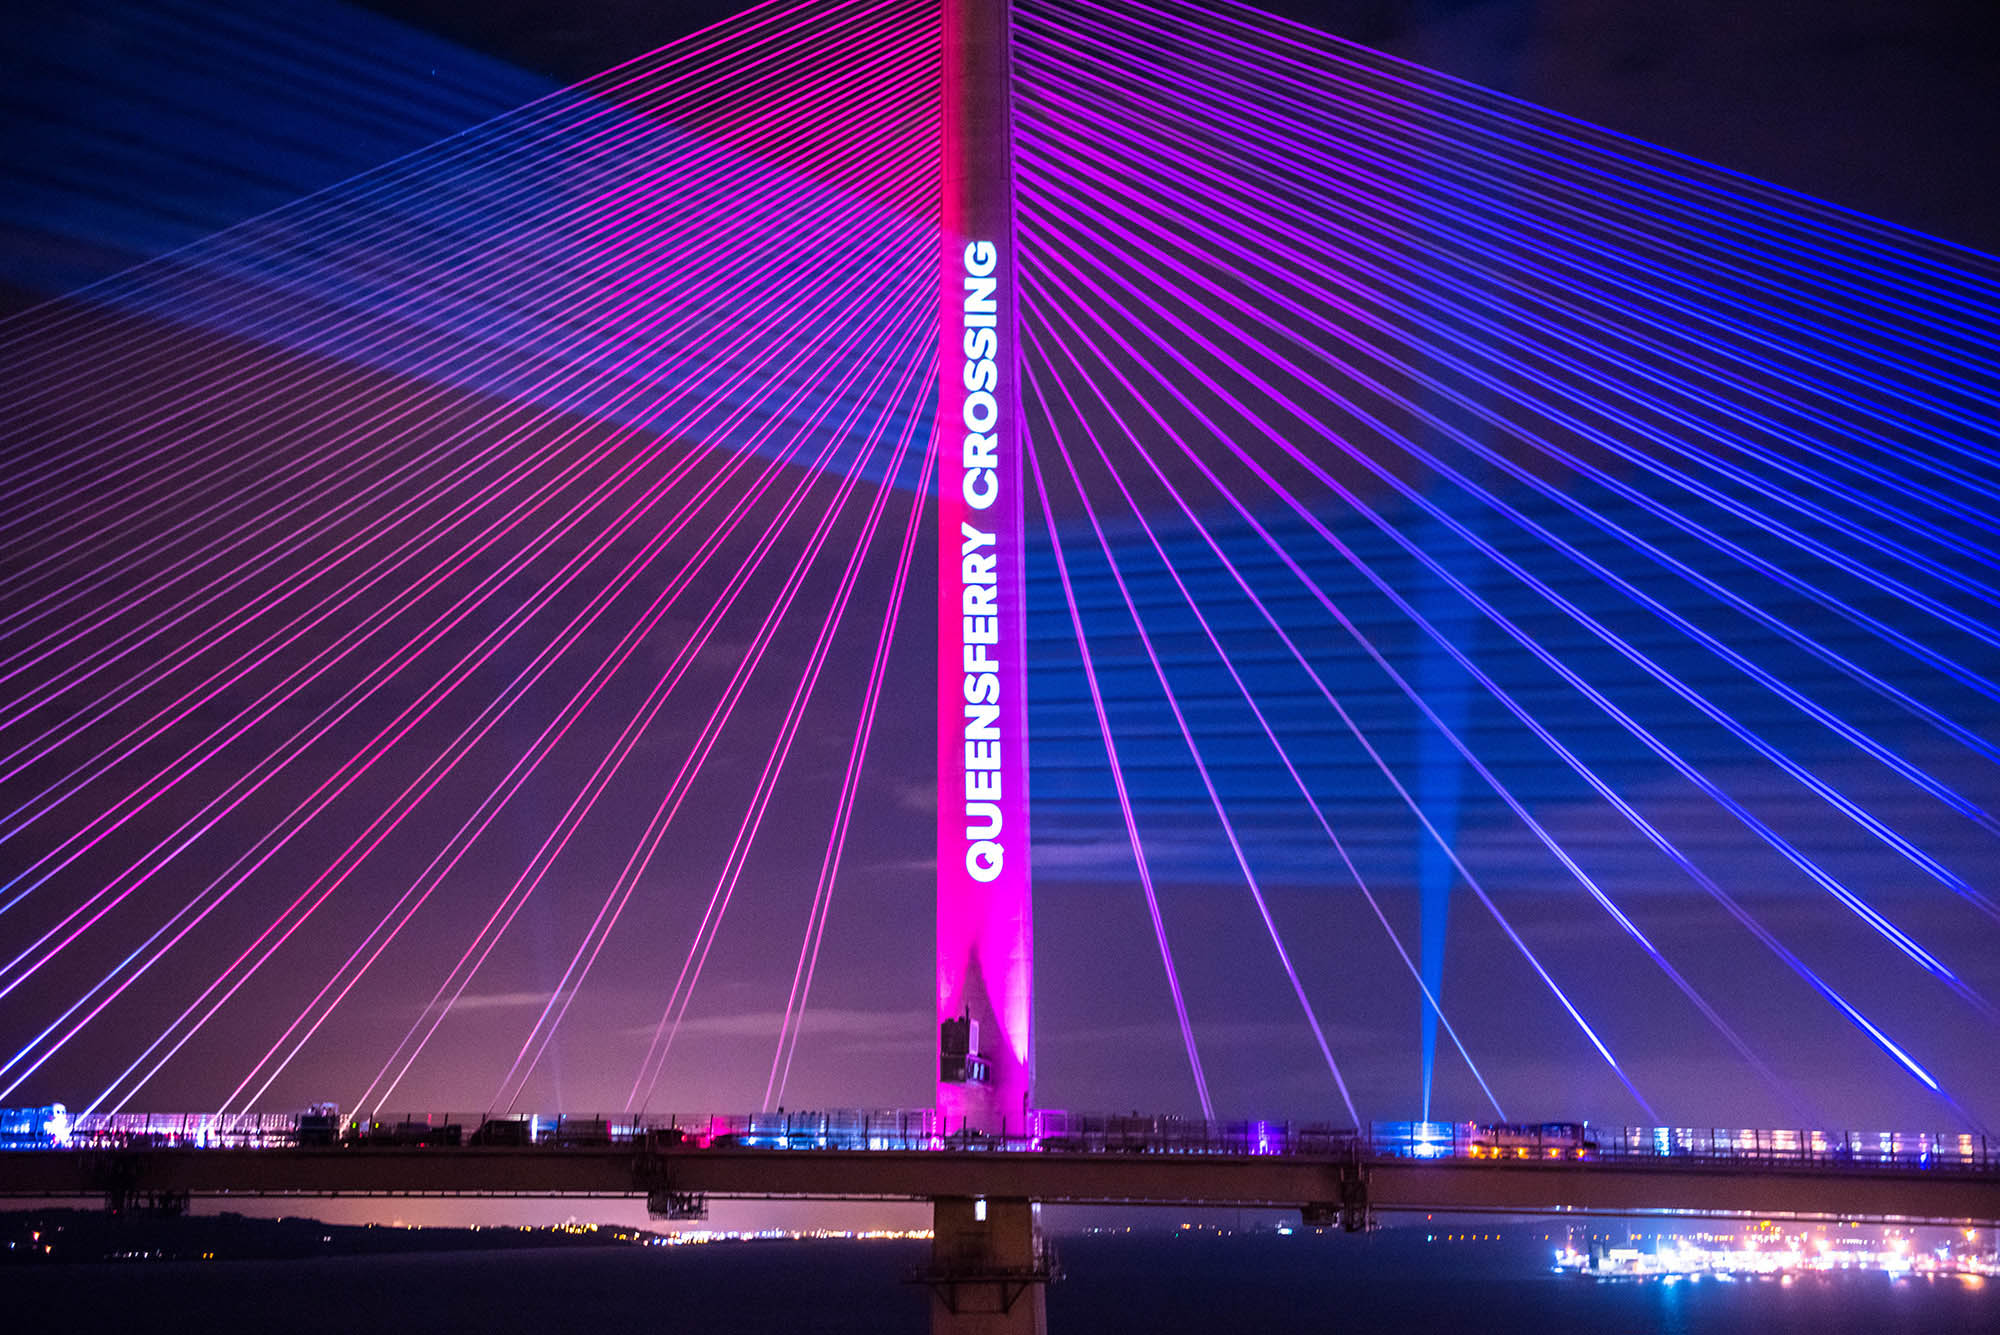 Queensferry Crossing Launch Projection, bridge spire